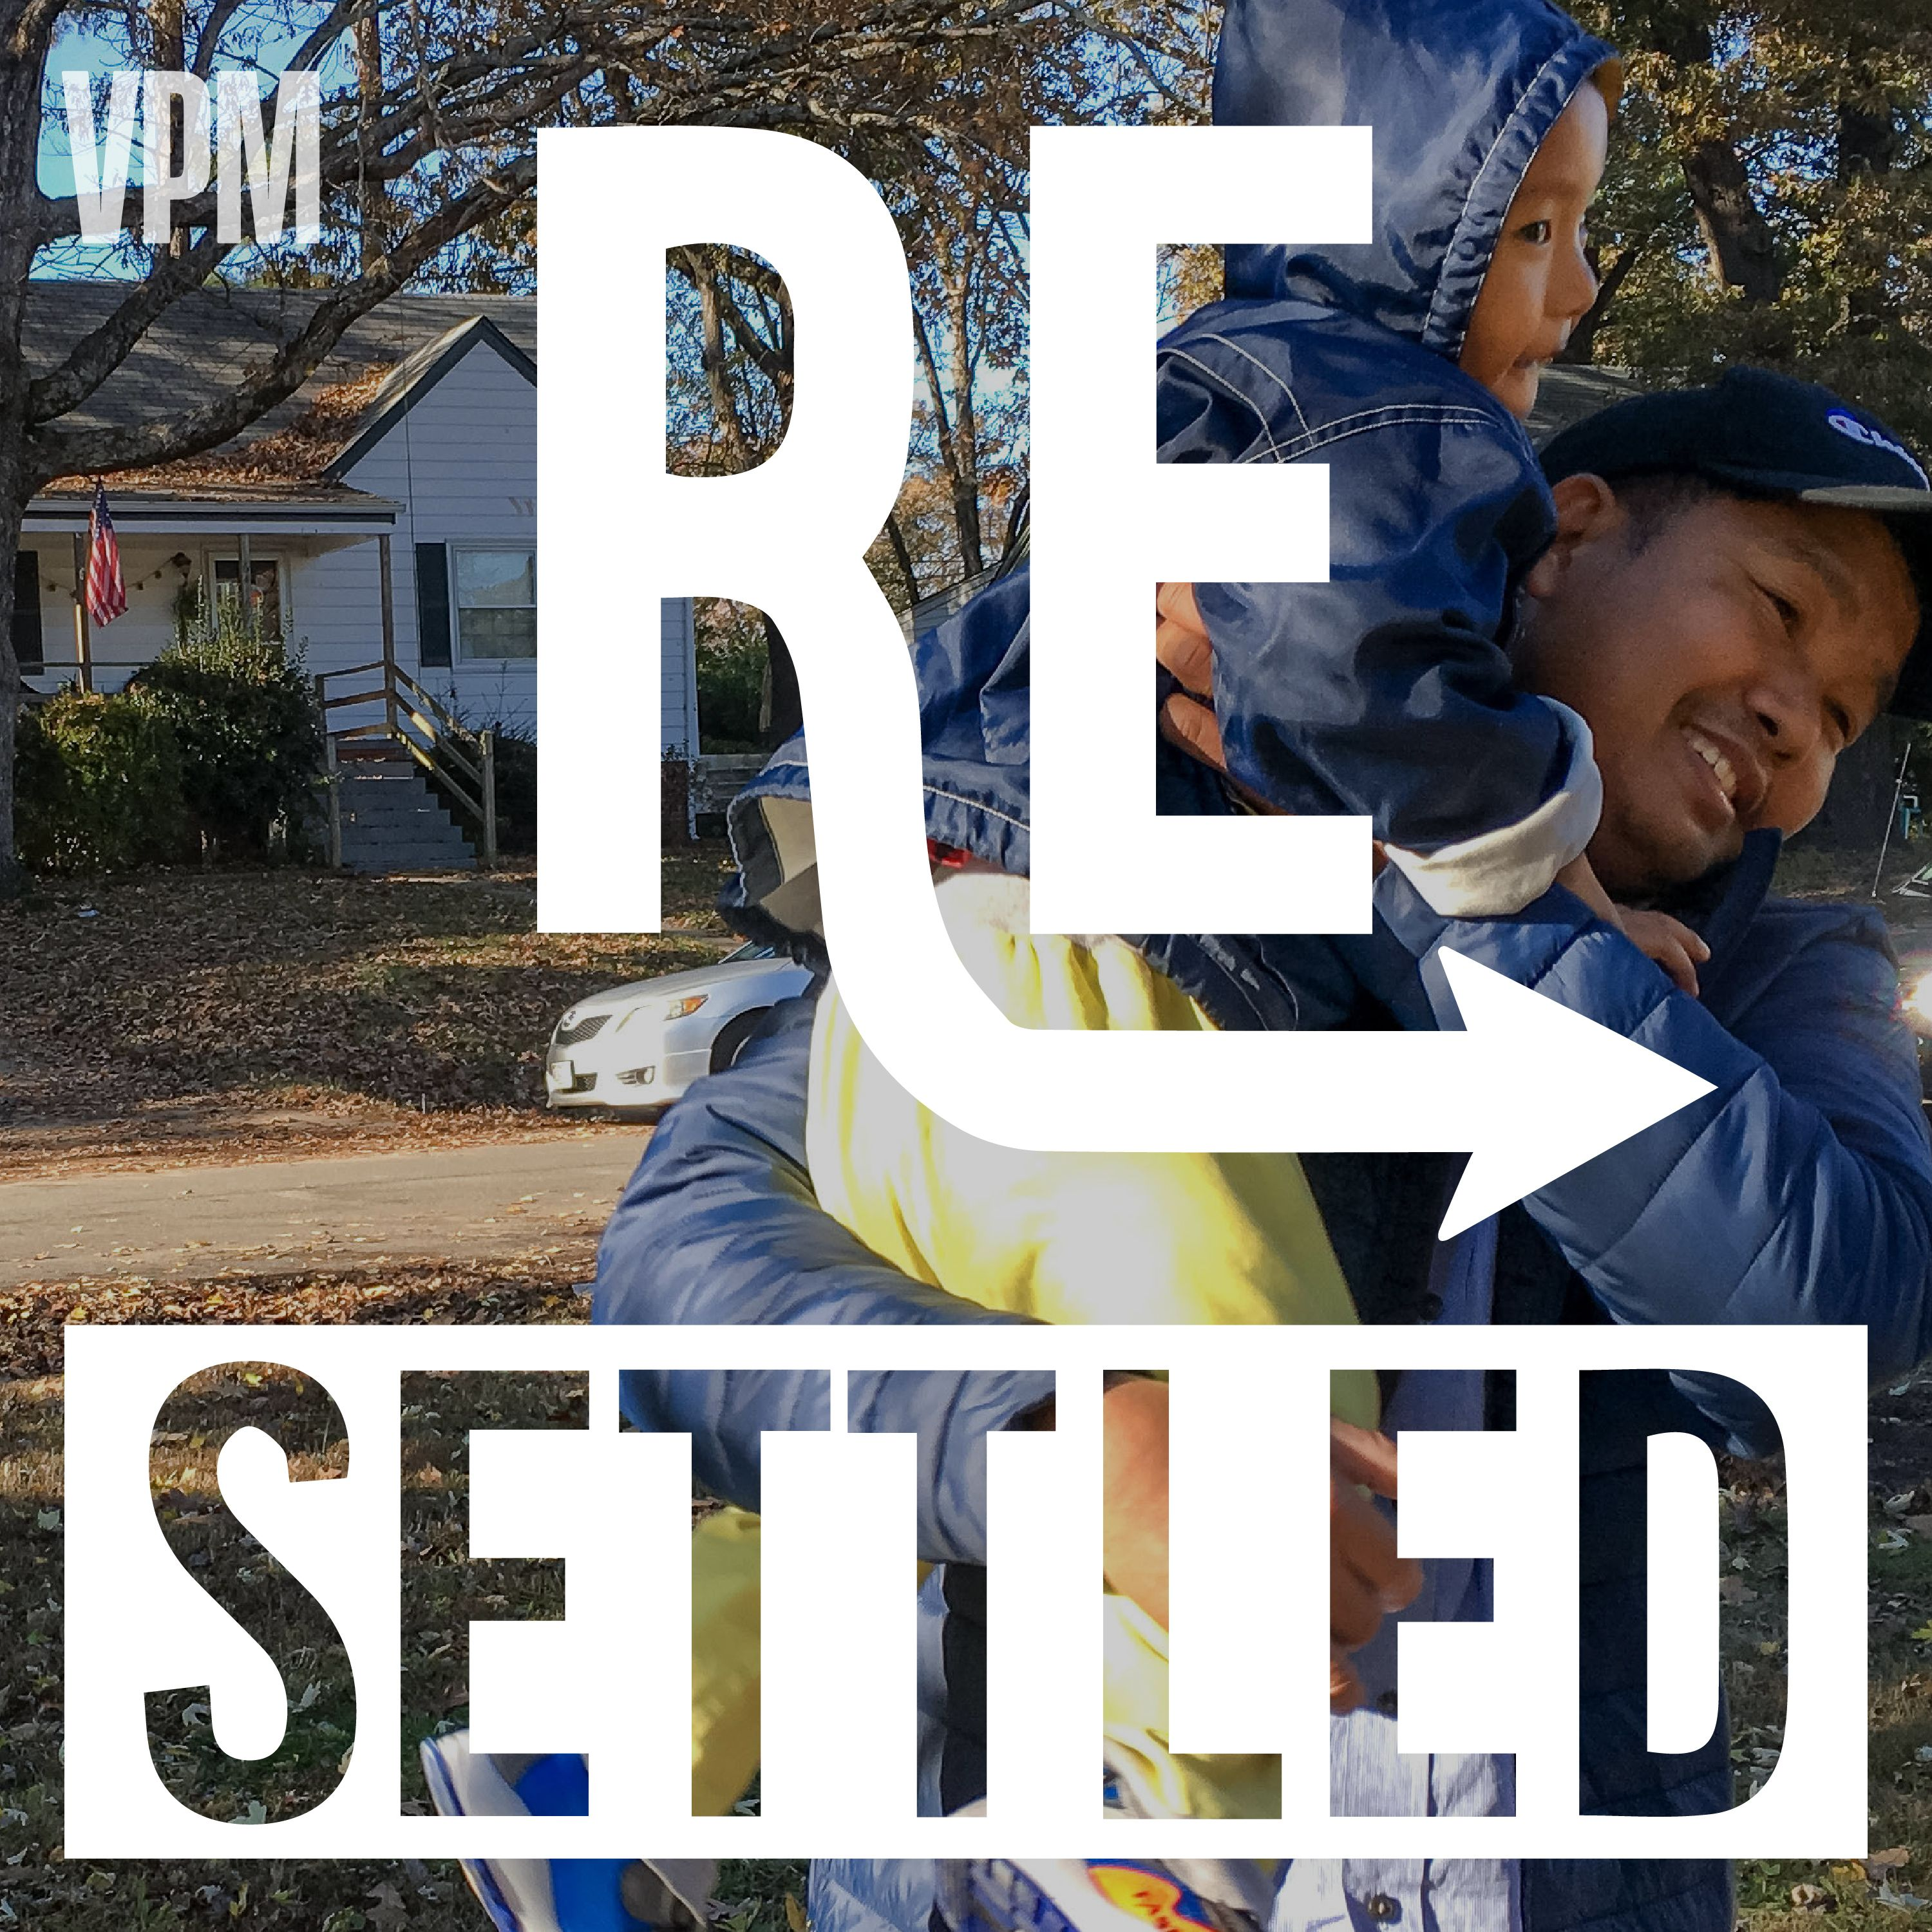 Introducing: Resettled